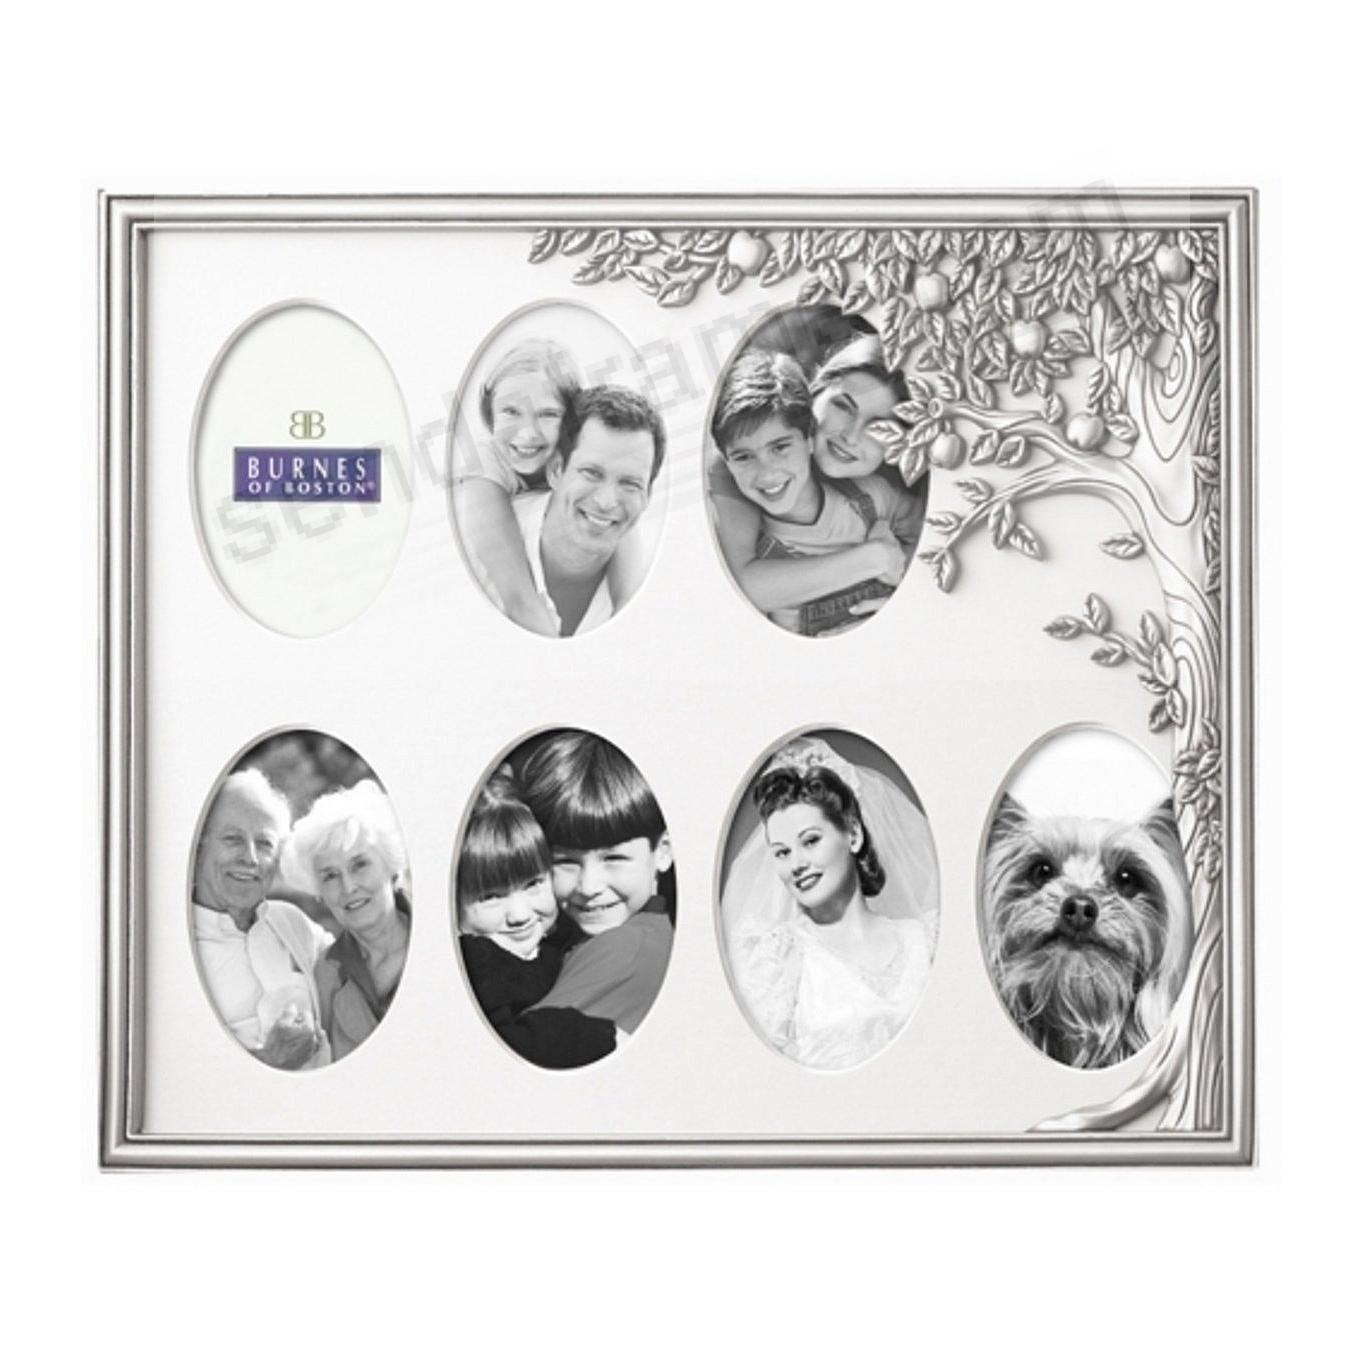 Pewter 7-opening Family Tree collage by Burnes - Picture Frames ...